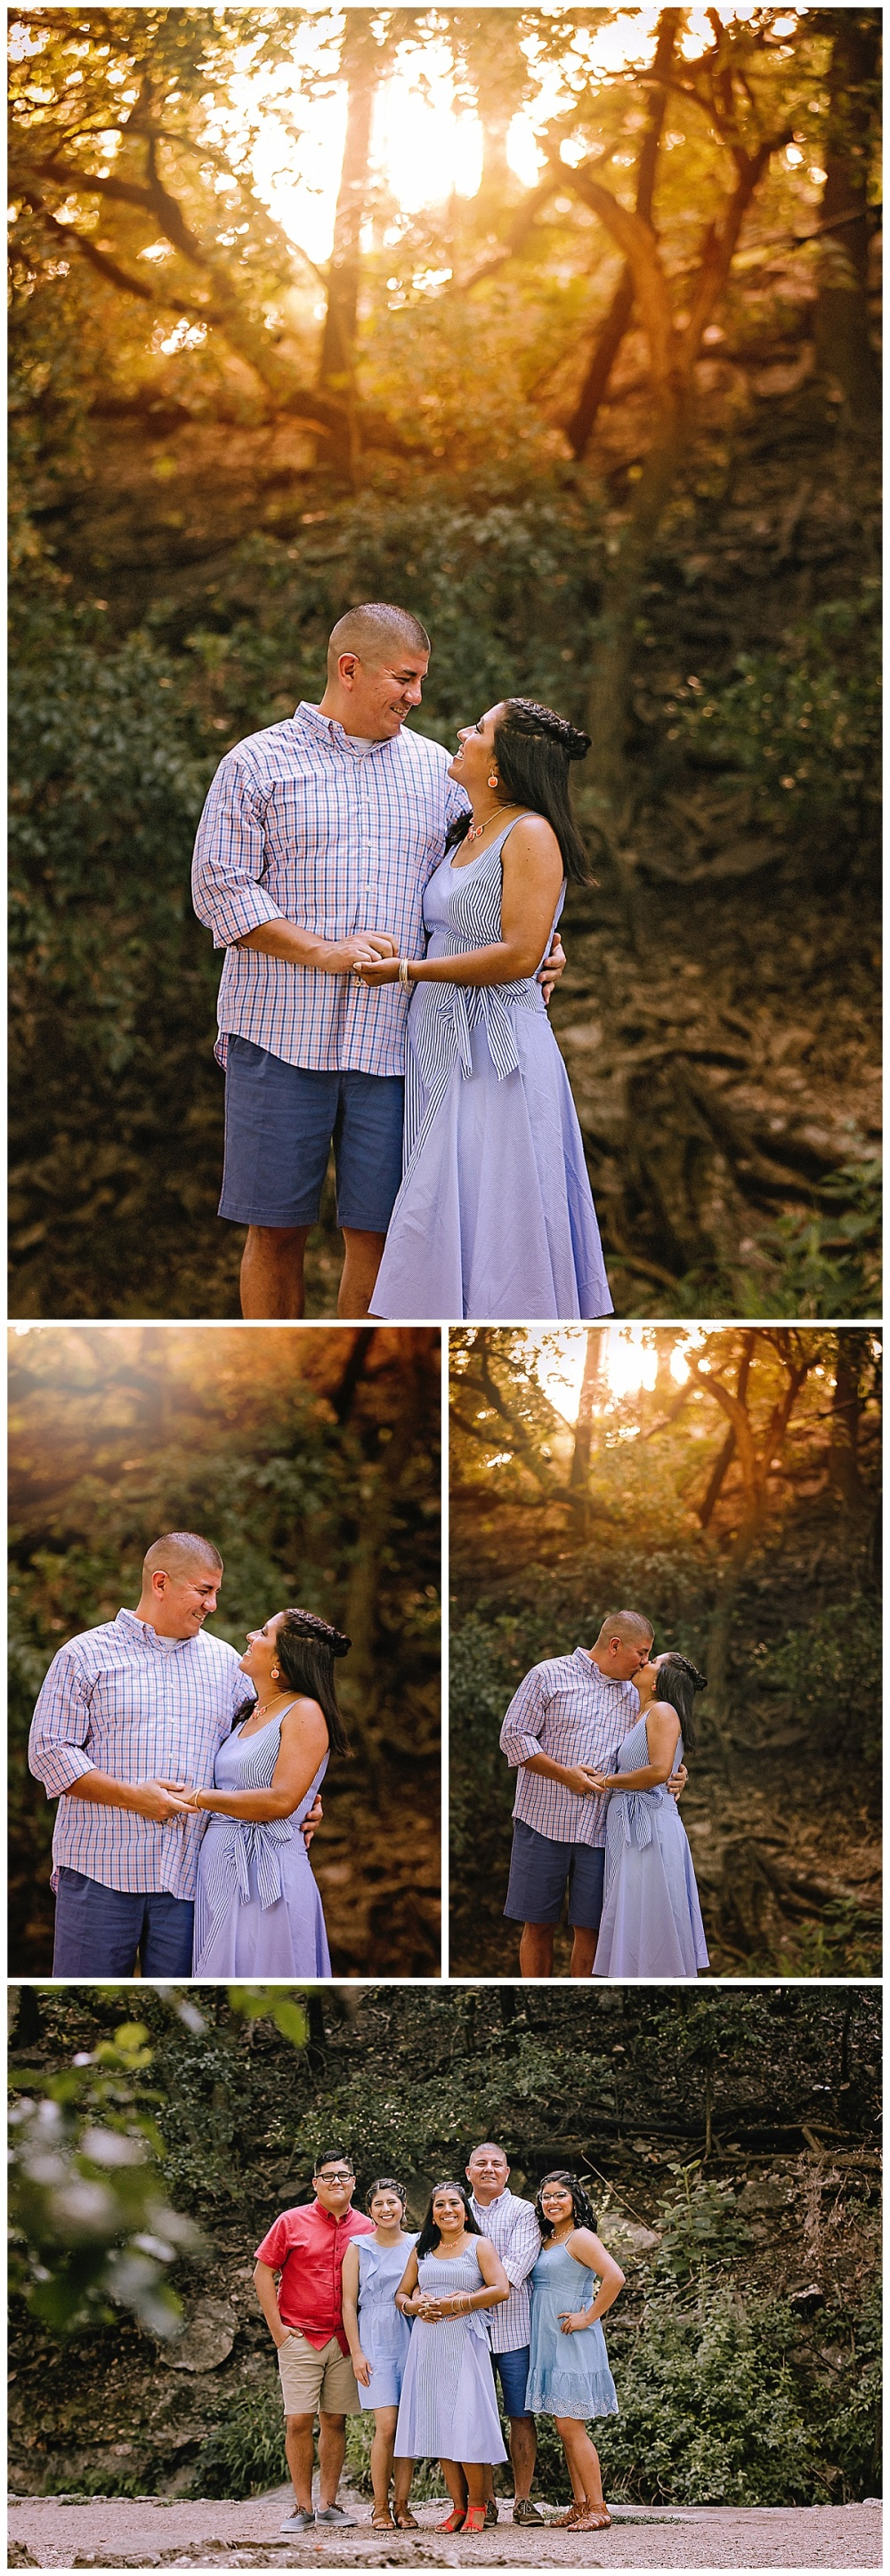 Carly-Barton-Photography-Family-Session-Landa-Park-New-Braunfels-Texas-Benavides_0013.jpg